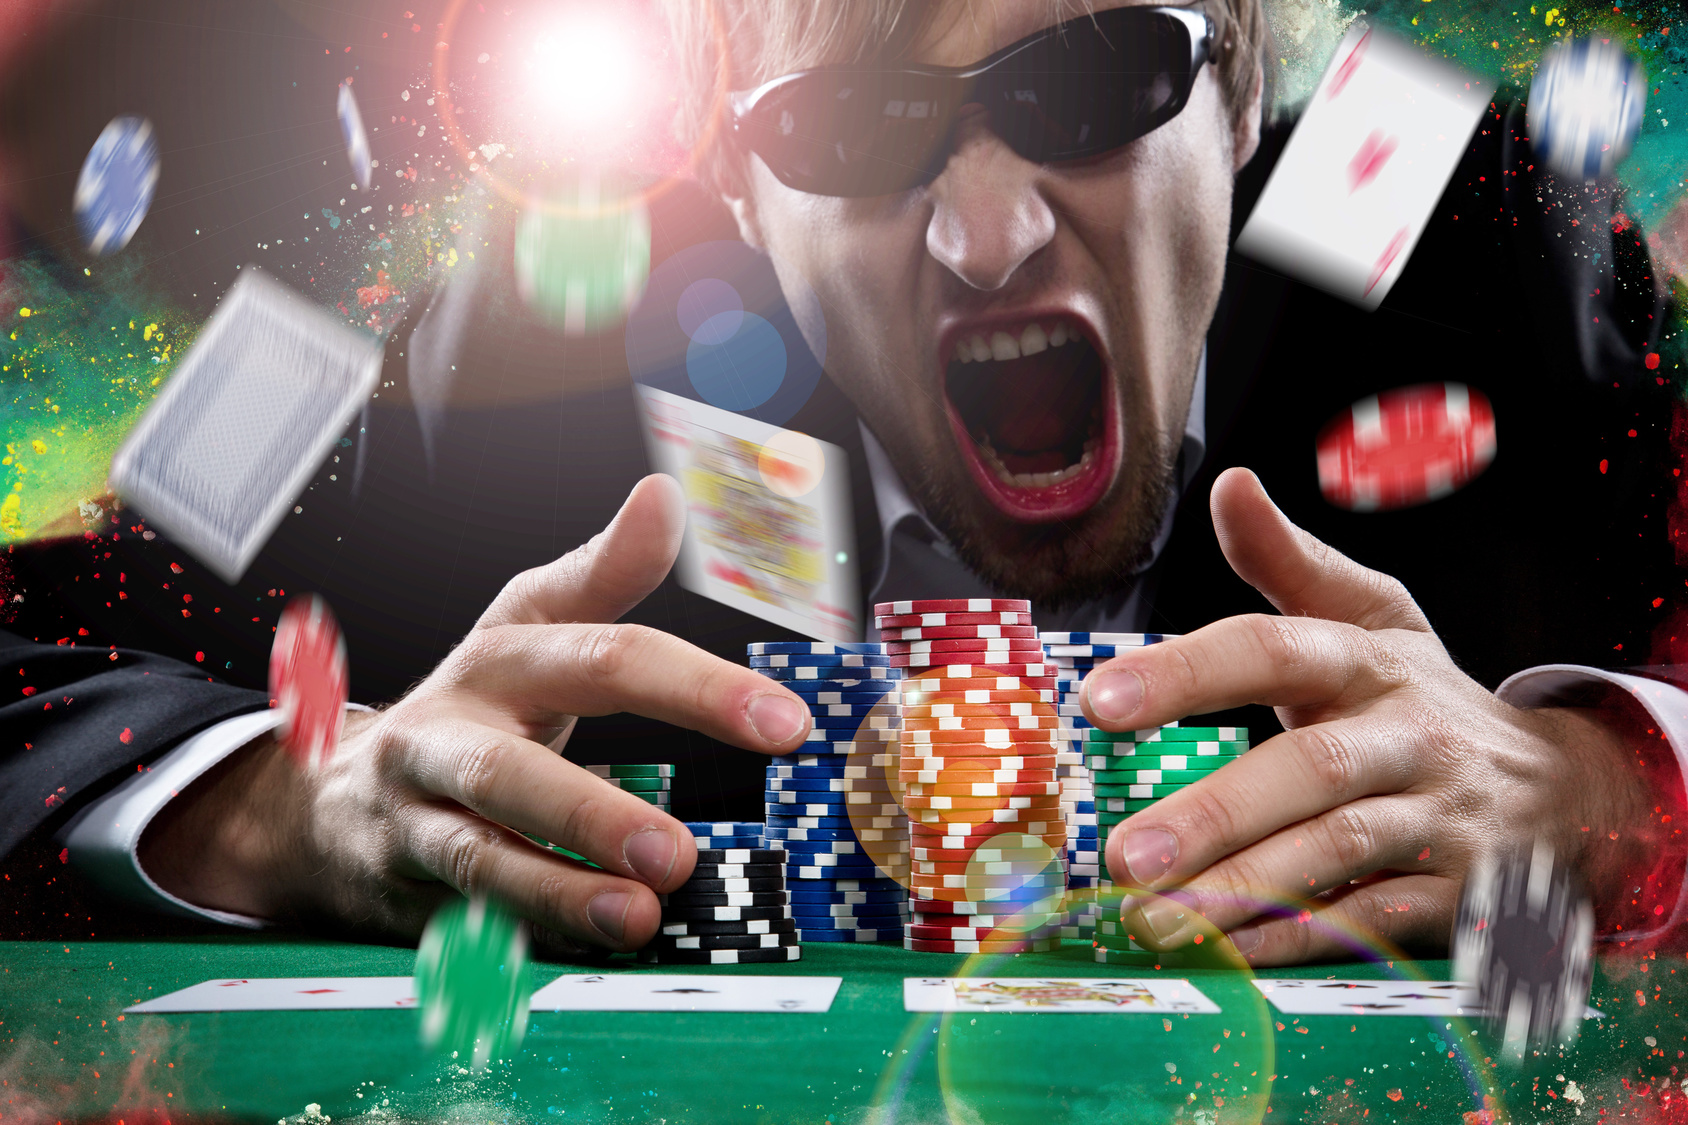 Mathematician, psychologist or psychic? What are the best skills for playing poker?